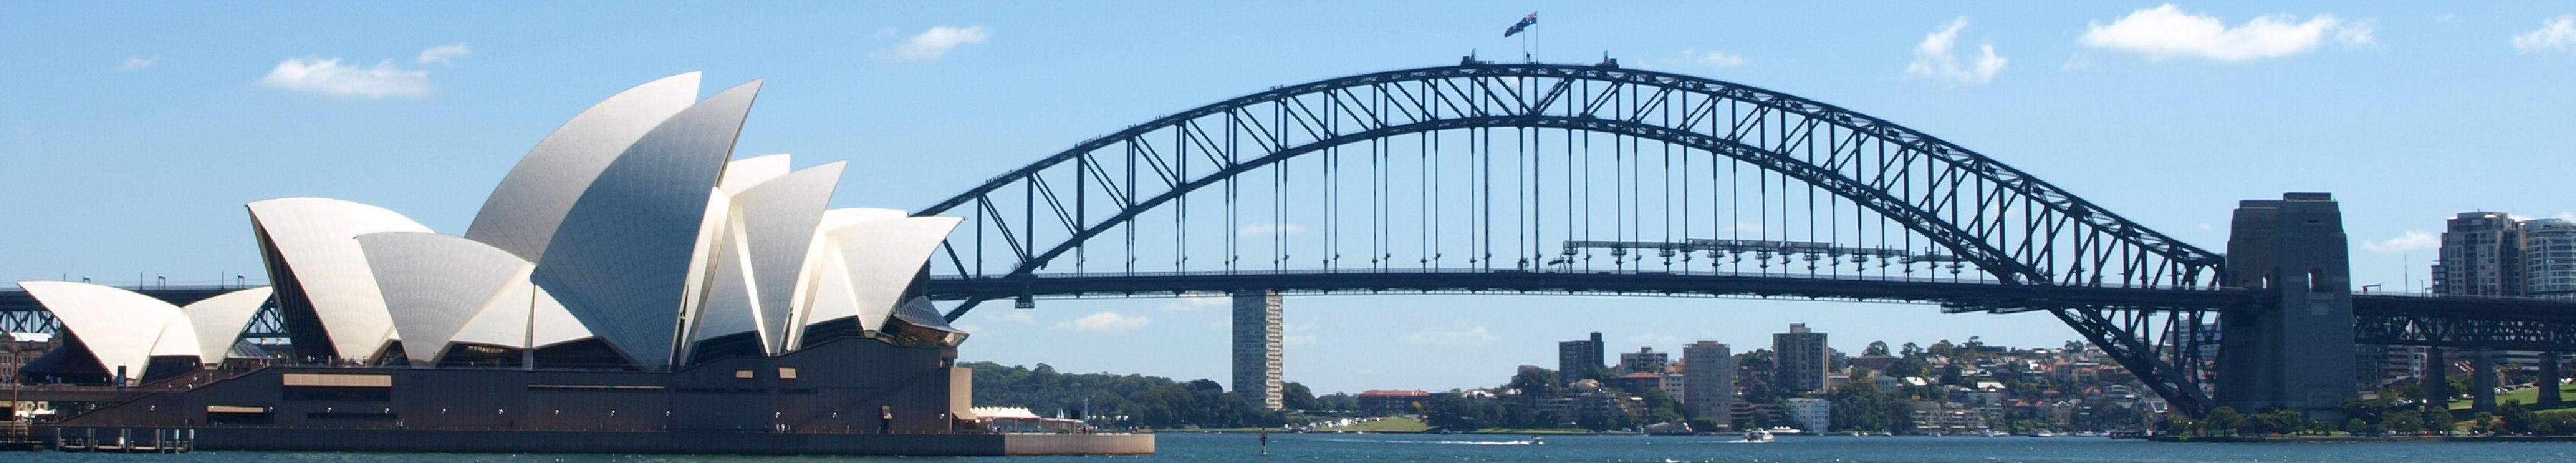 More expat workers are coming home to Australia and staying for the jobs